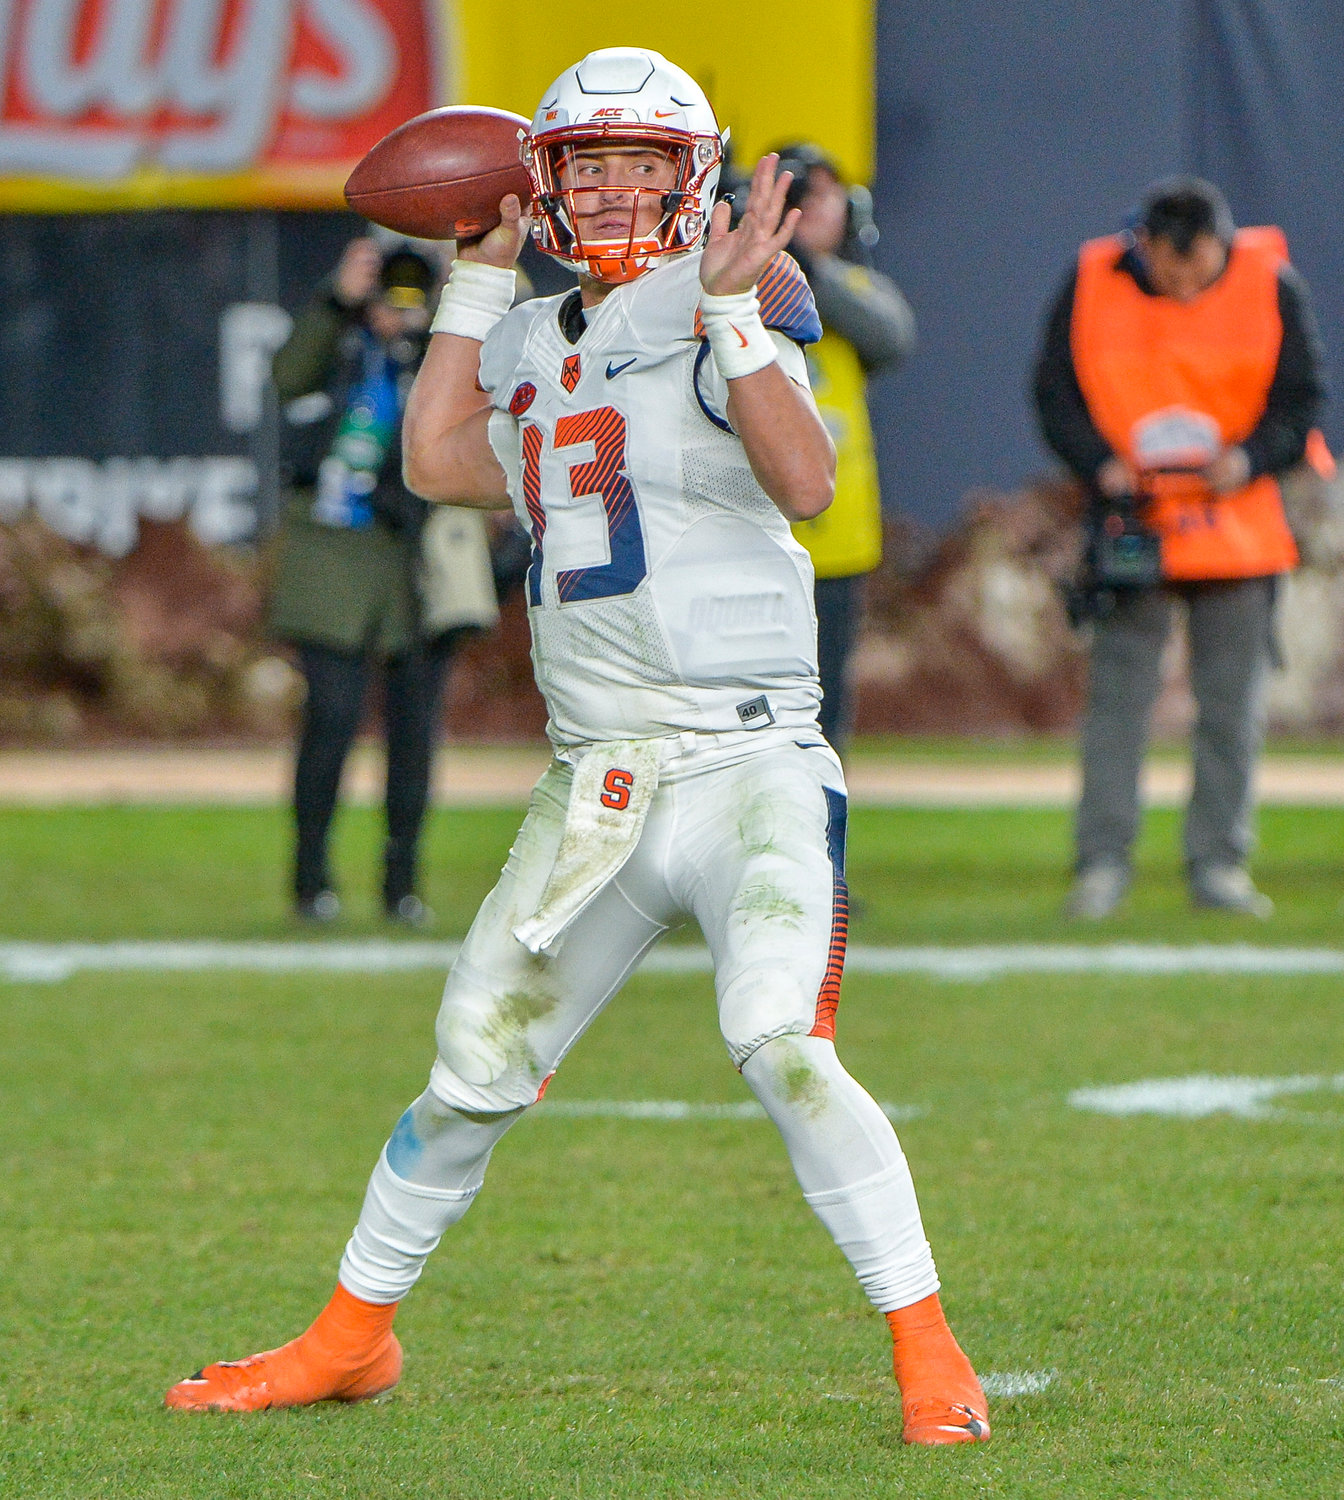 NEW STARTER — Syracuse quarterback Tommy DeVito, shown during a game against Notre Dame last year, is ready to step in as the leader of the Orange offense this season.